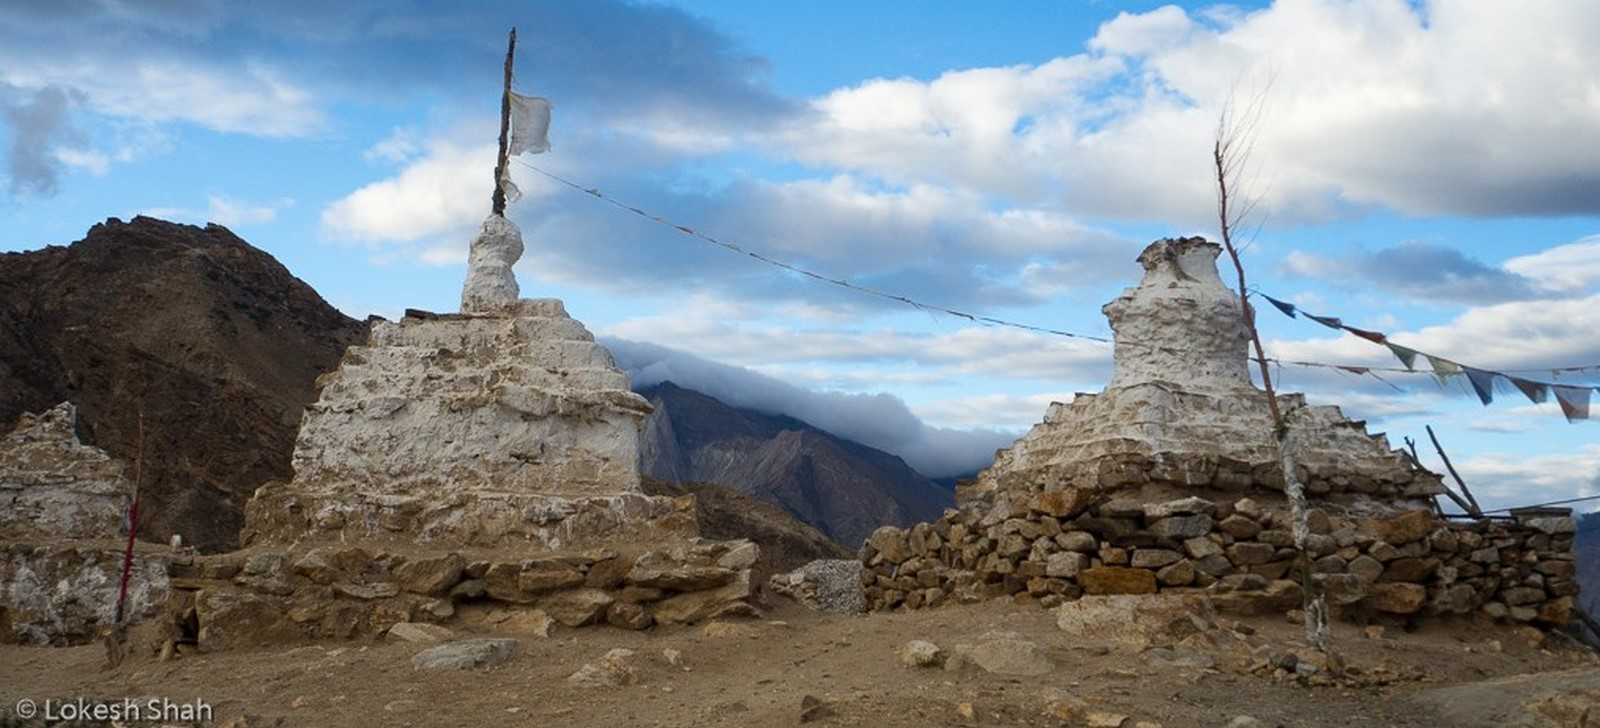 The Nako Valley Research and Conservation: The Monastery of Lotsawa Lhakhang - Sheet2